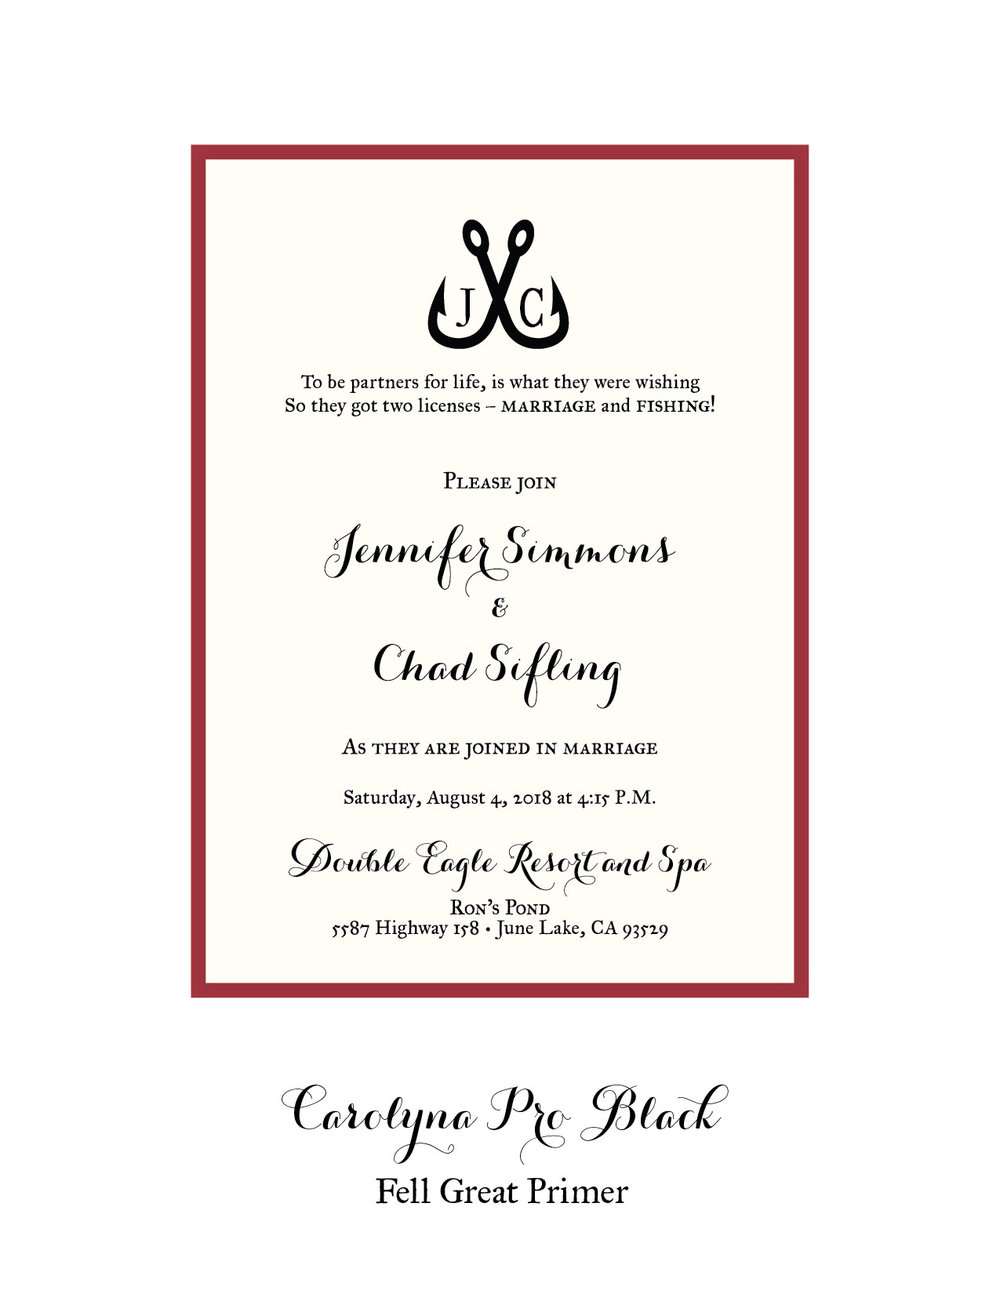 Wedding Fonts_Carolyna Pro Black.jpg